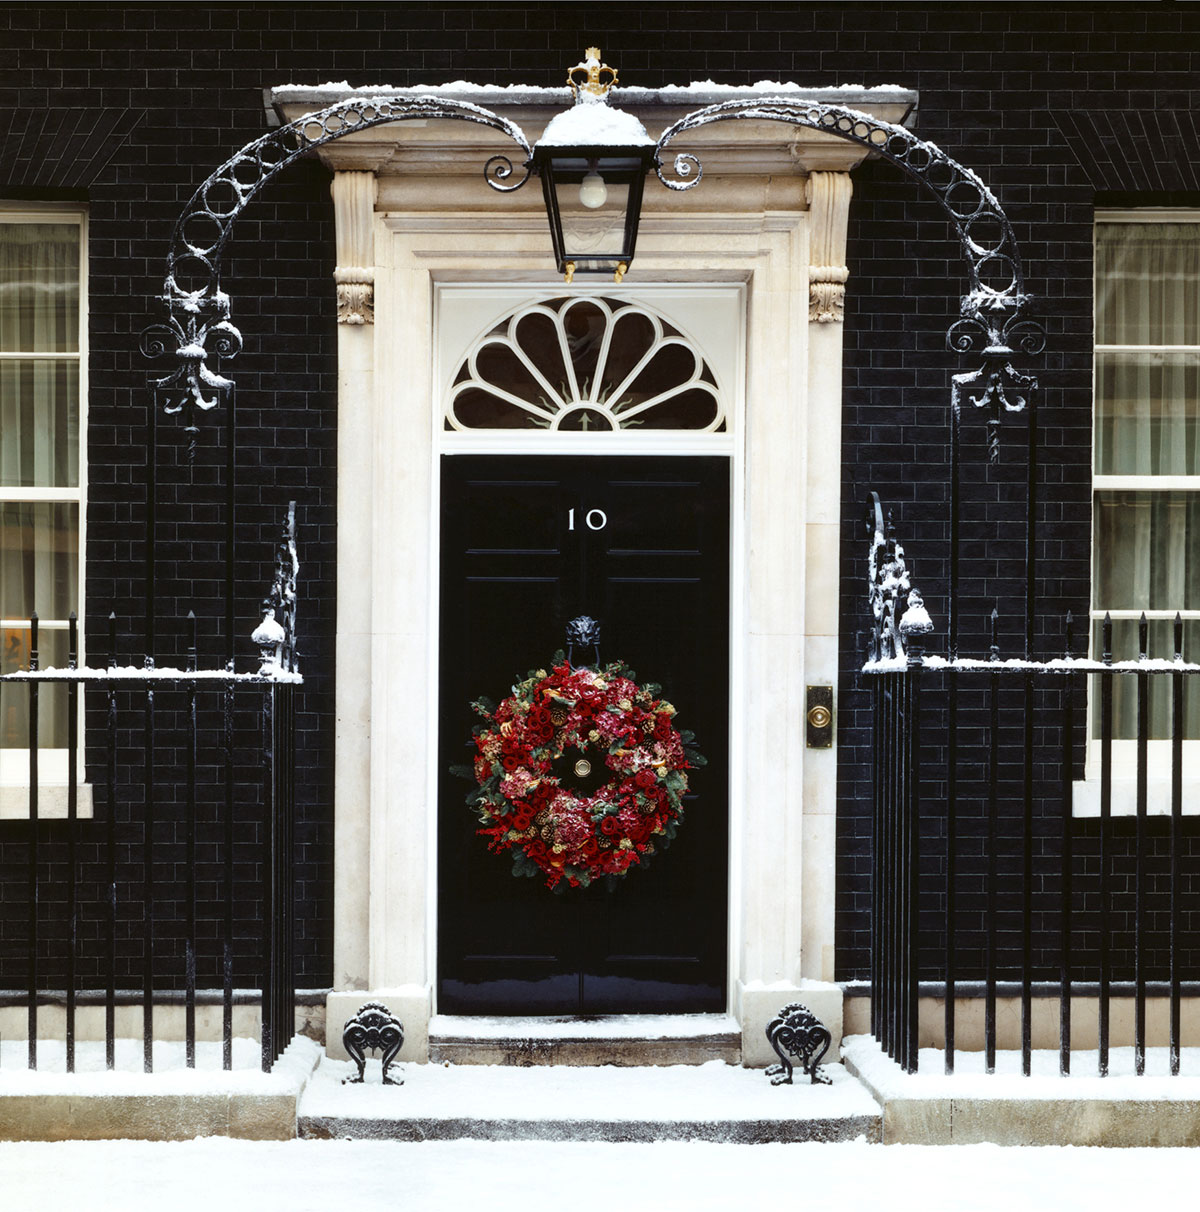 Snow Business frost effect on 10 Downing Street